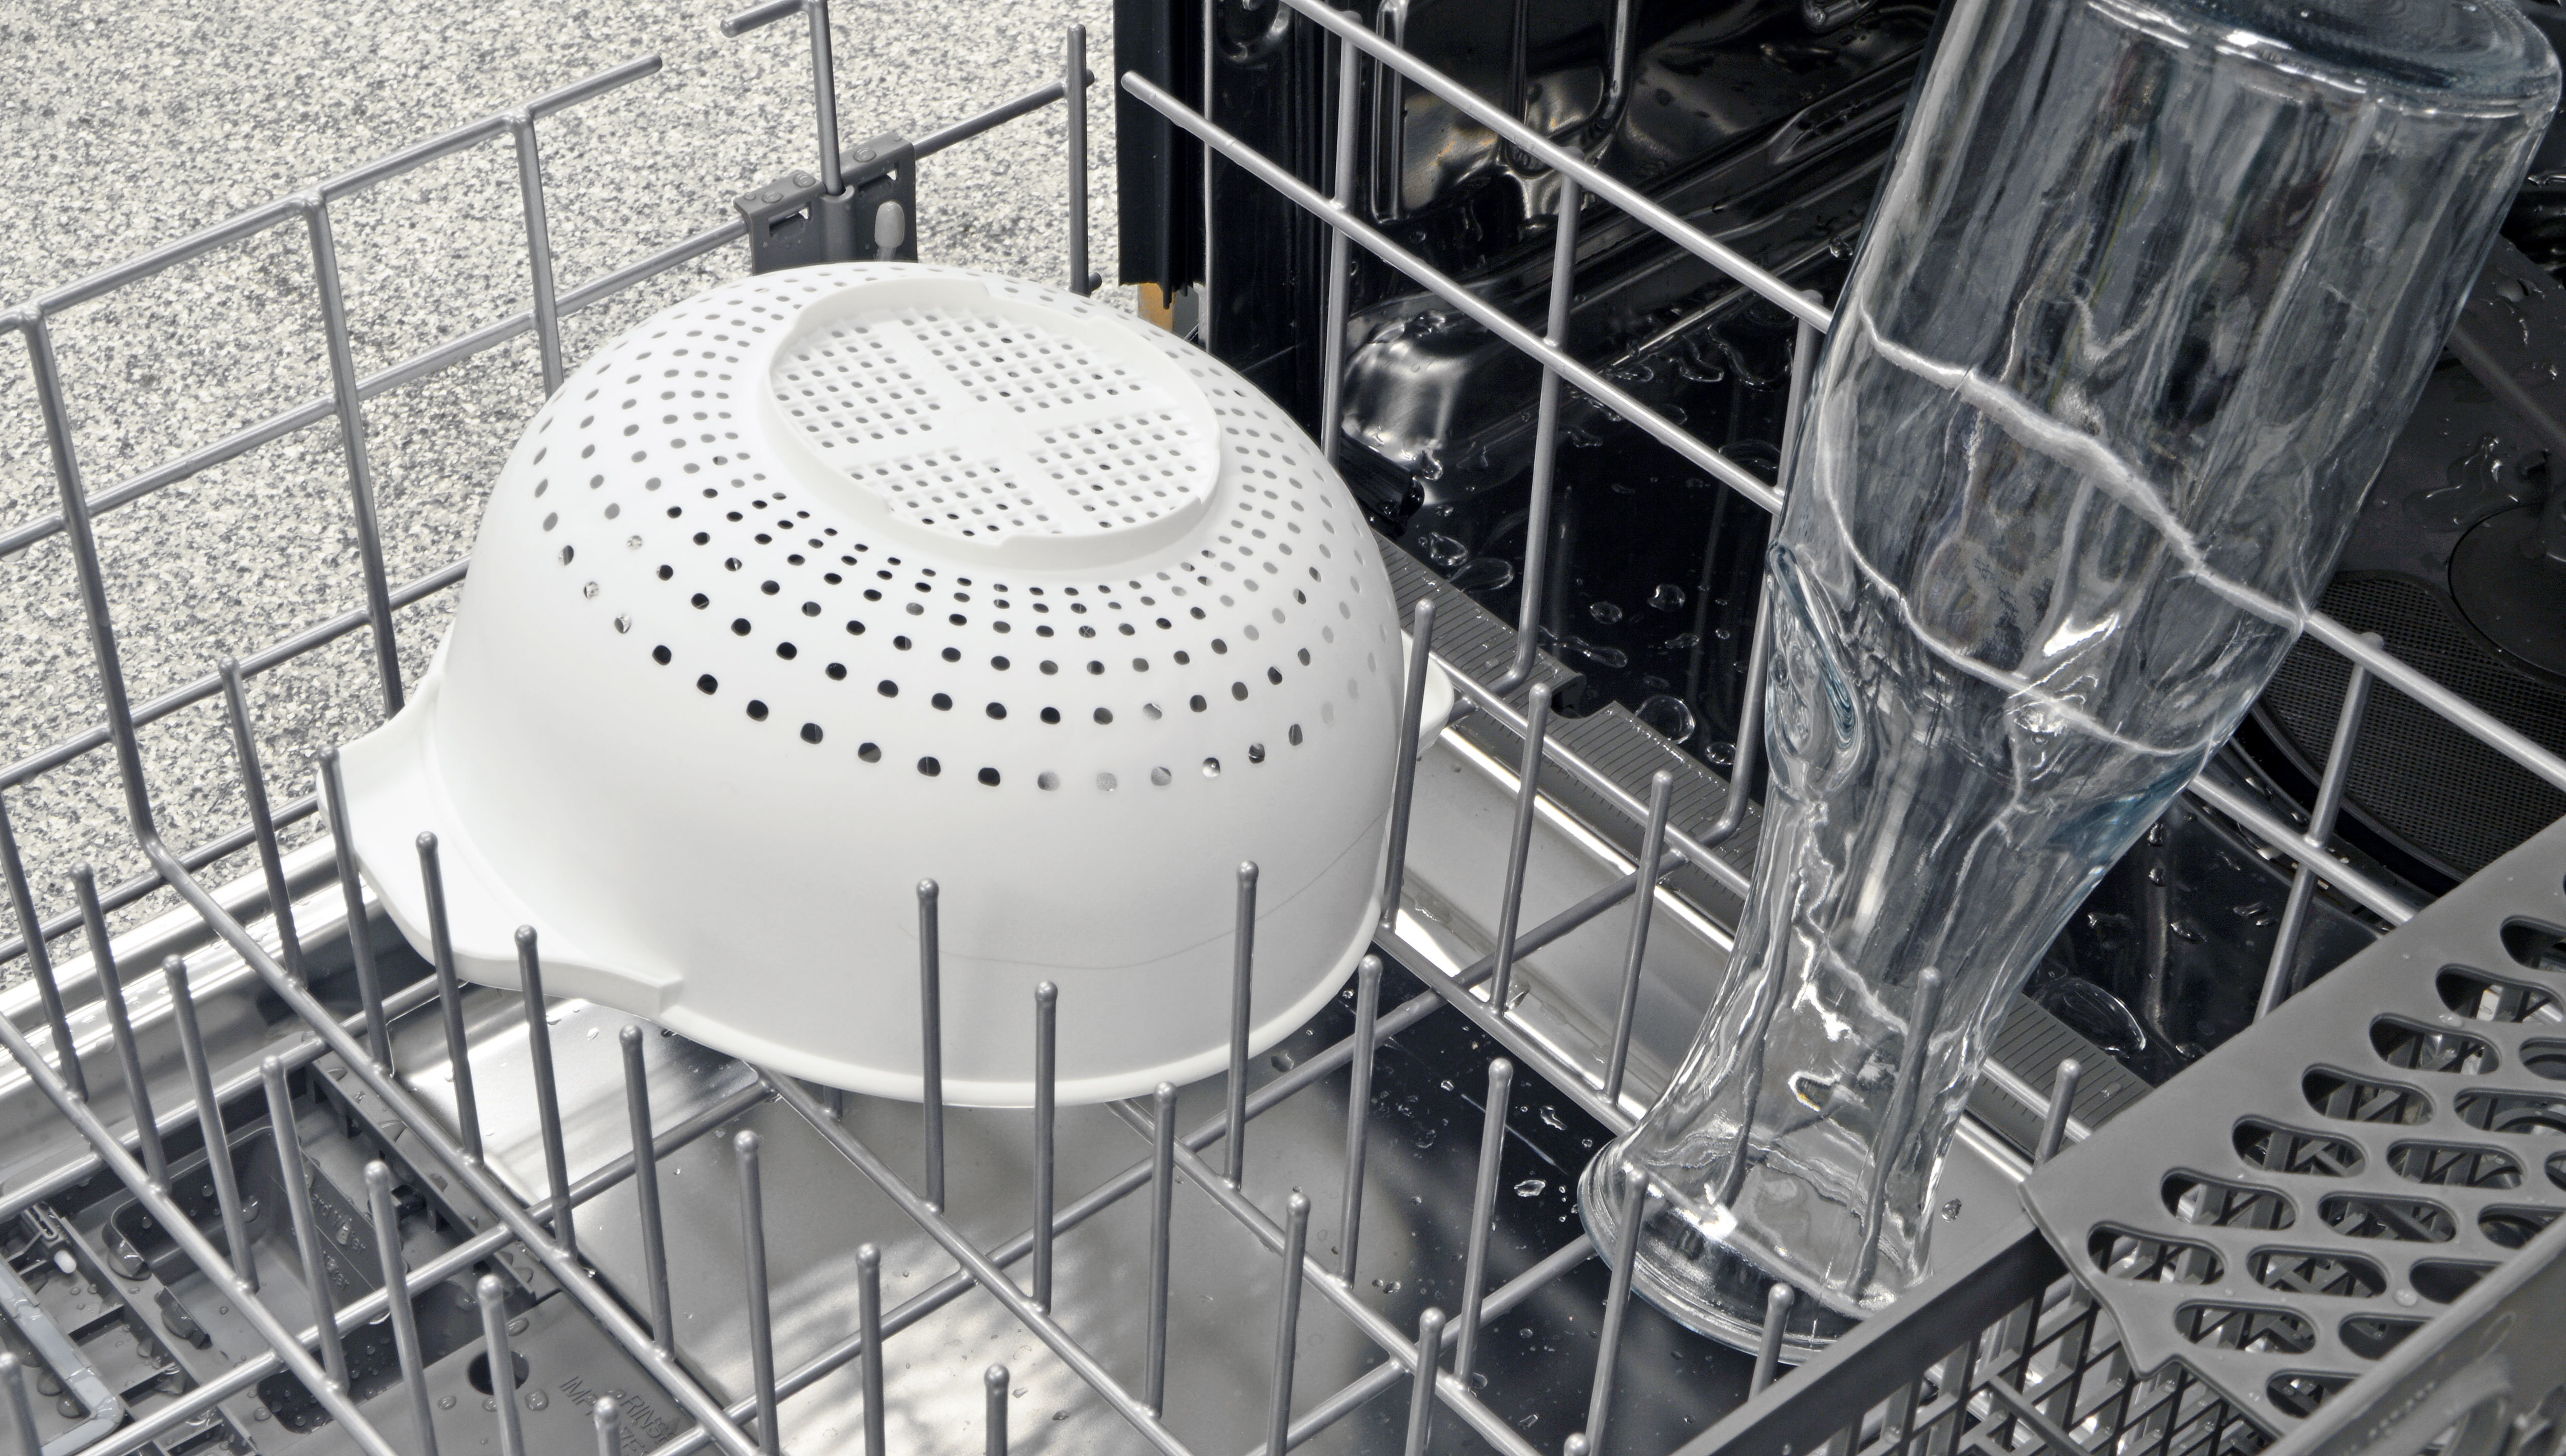 With the IKEA Renlig IUD8555DX's one row of adjustable tines pointing up, there's no real convenient way to fit items as large as our colander.